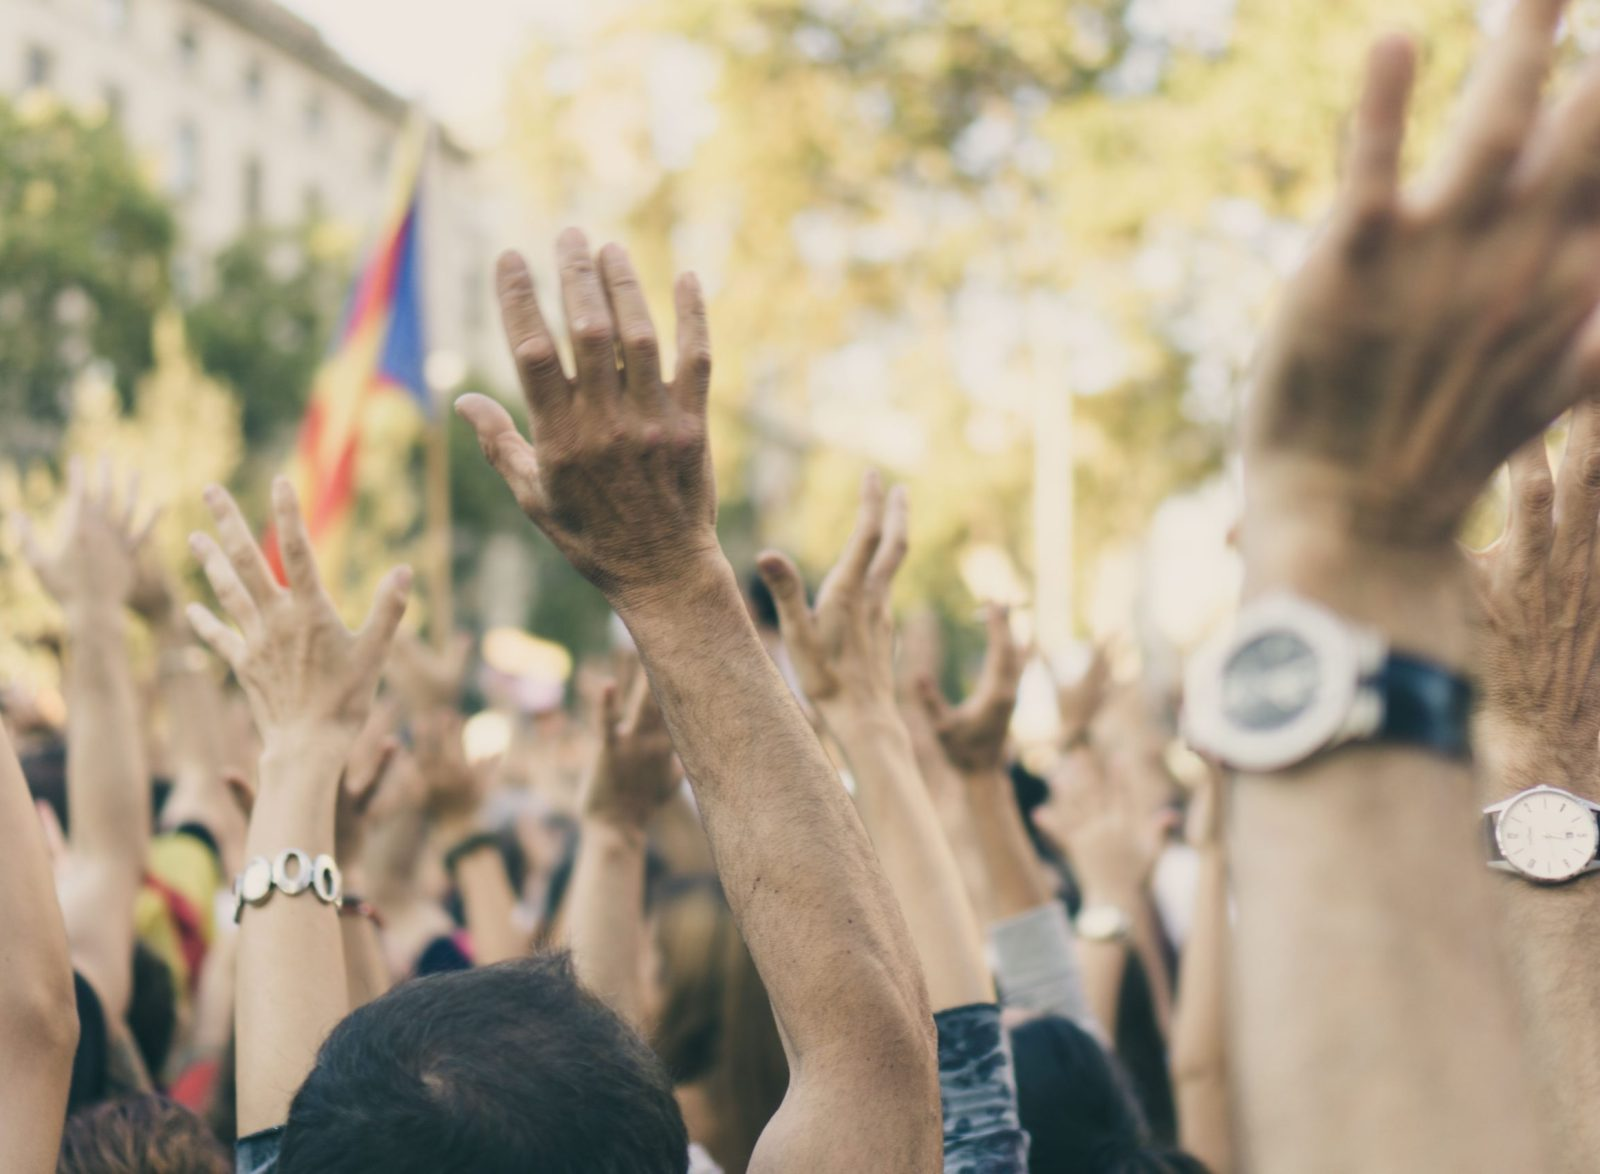 Protest with hands and flags in the air.